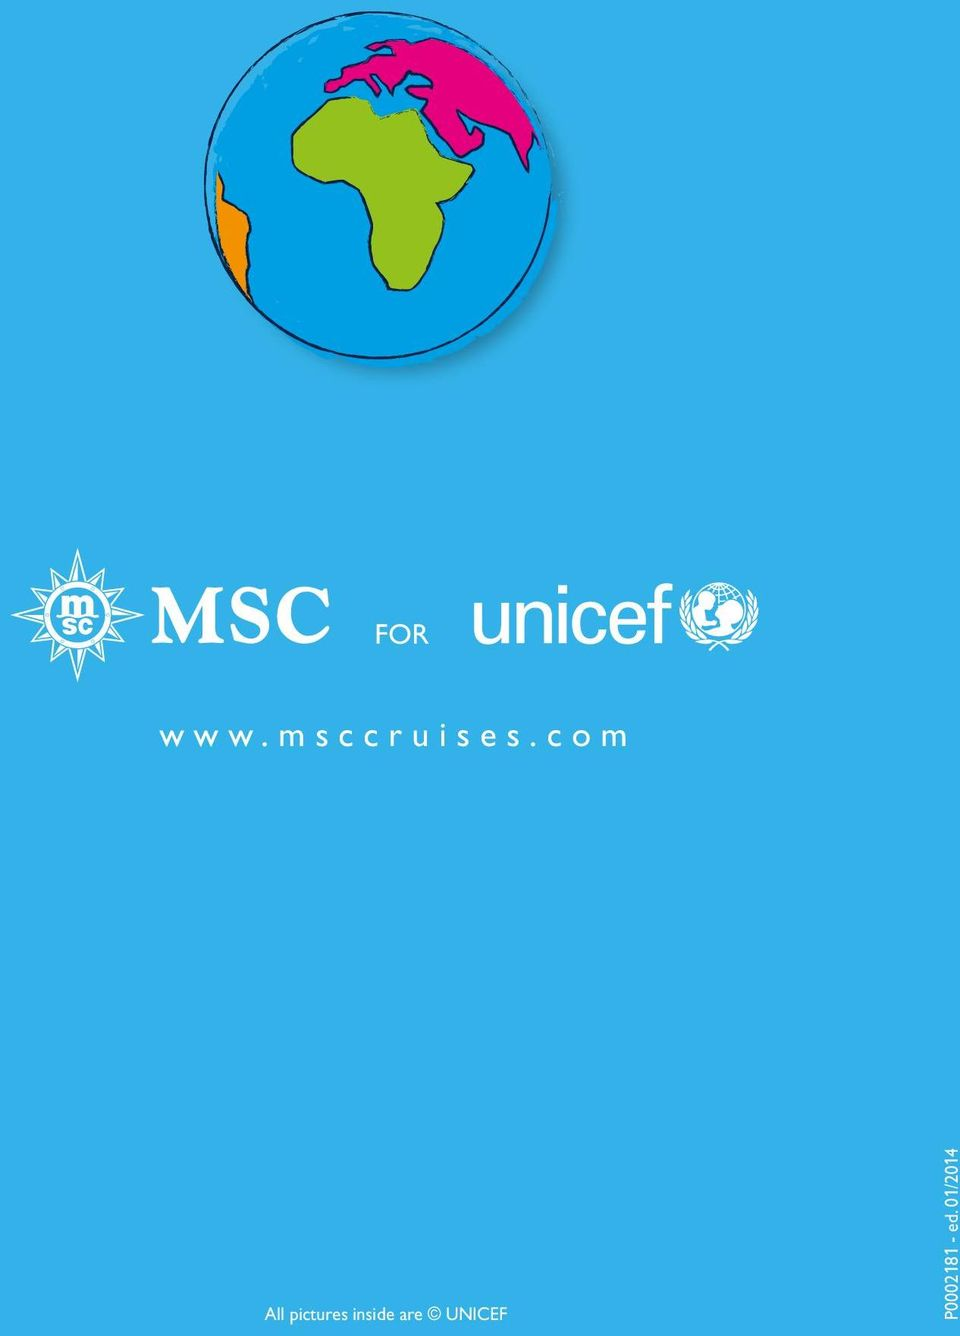 inside are UNICEF